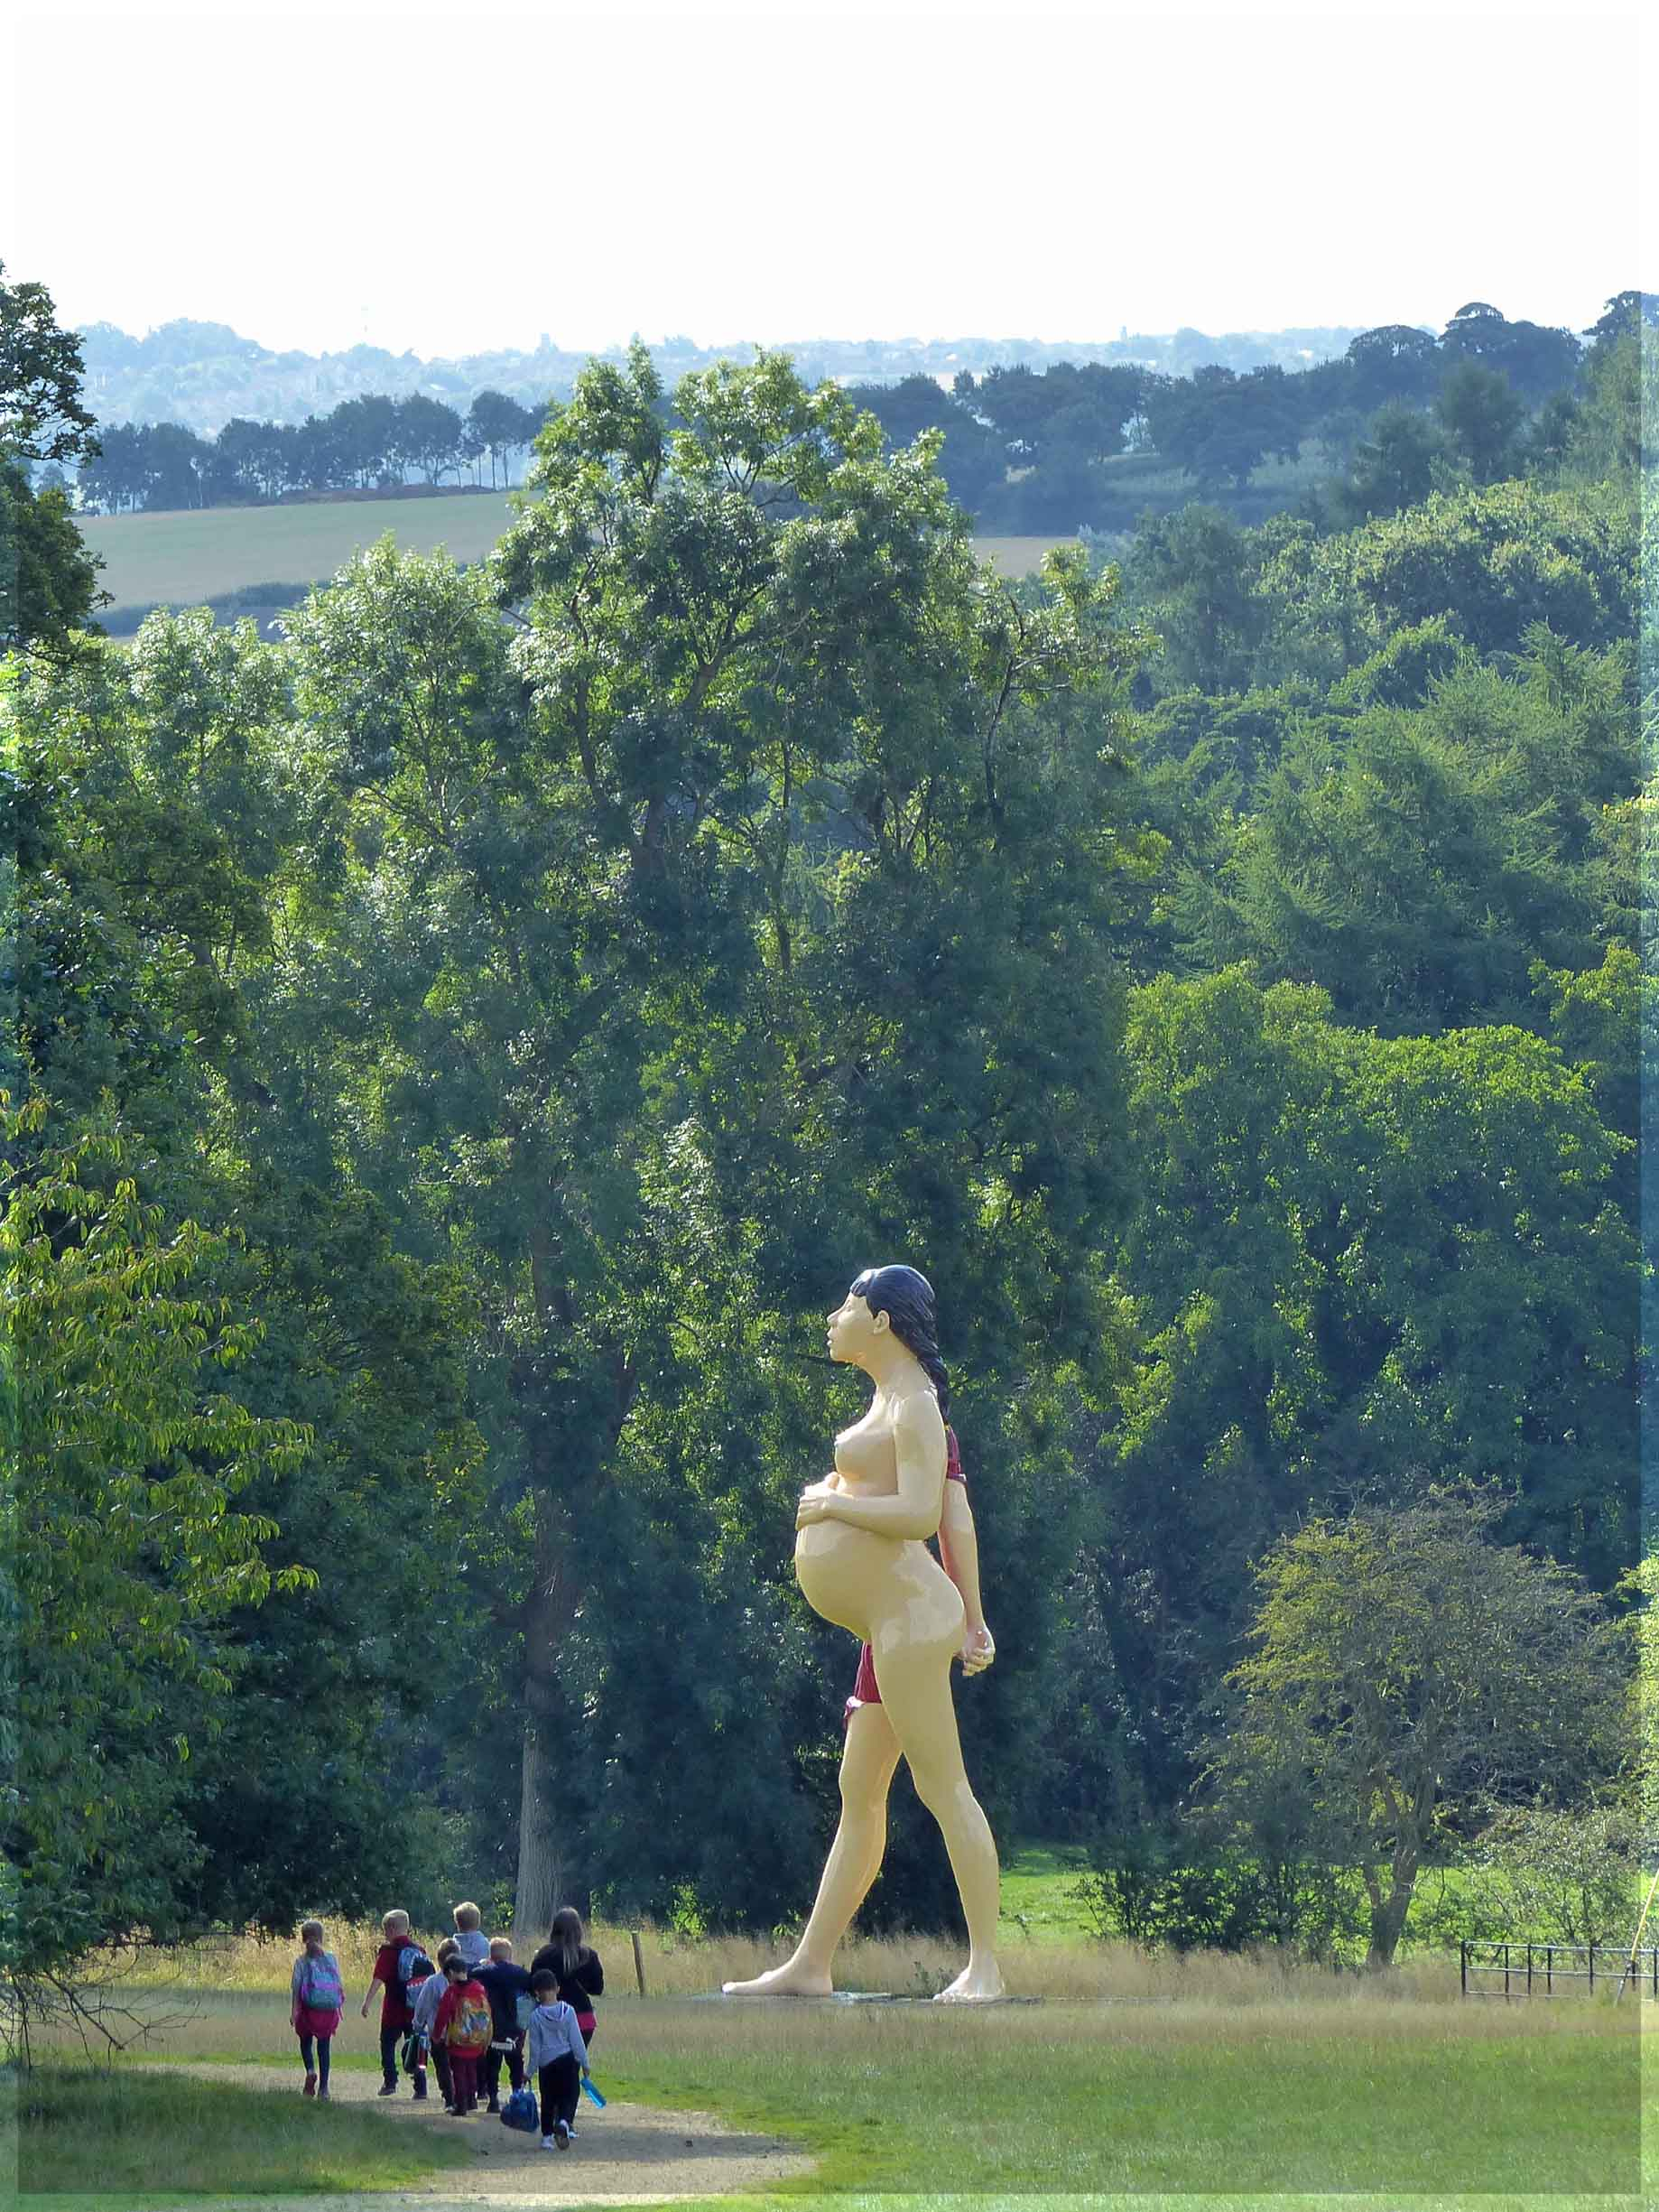 Huge sculpture of pregnant woman with group of children walking past